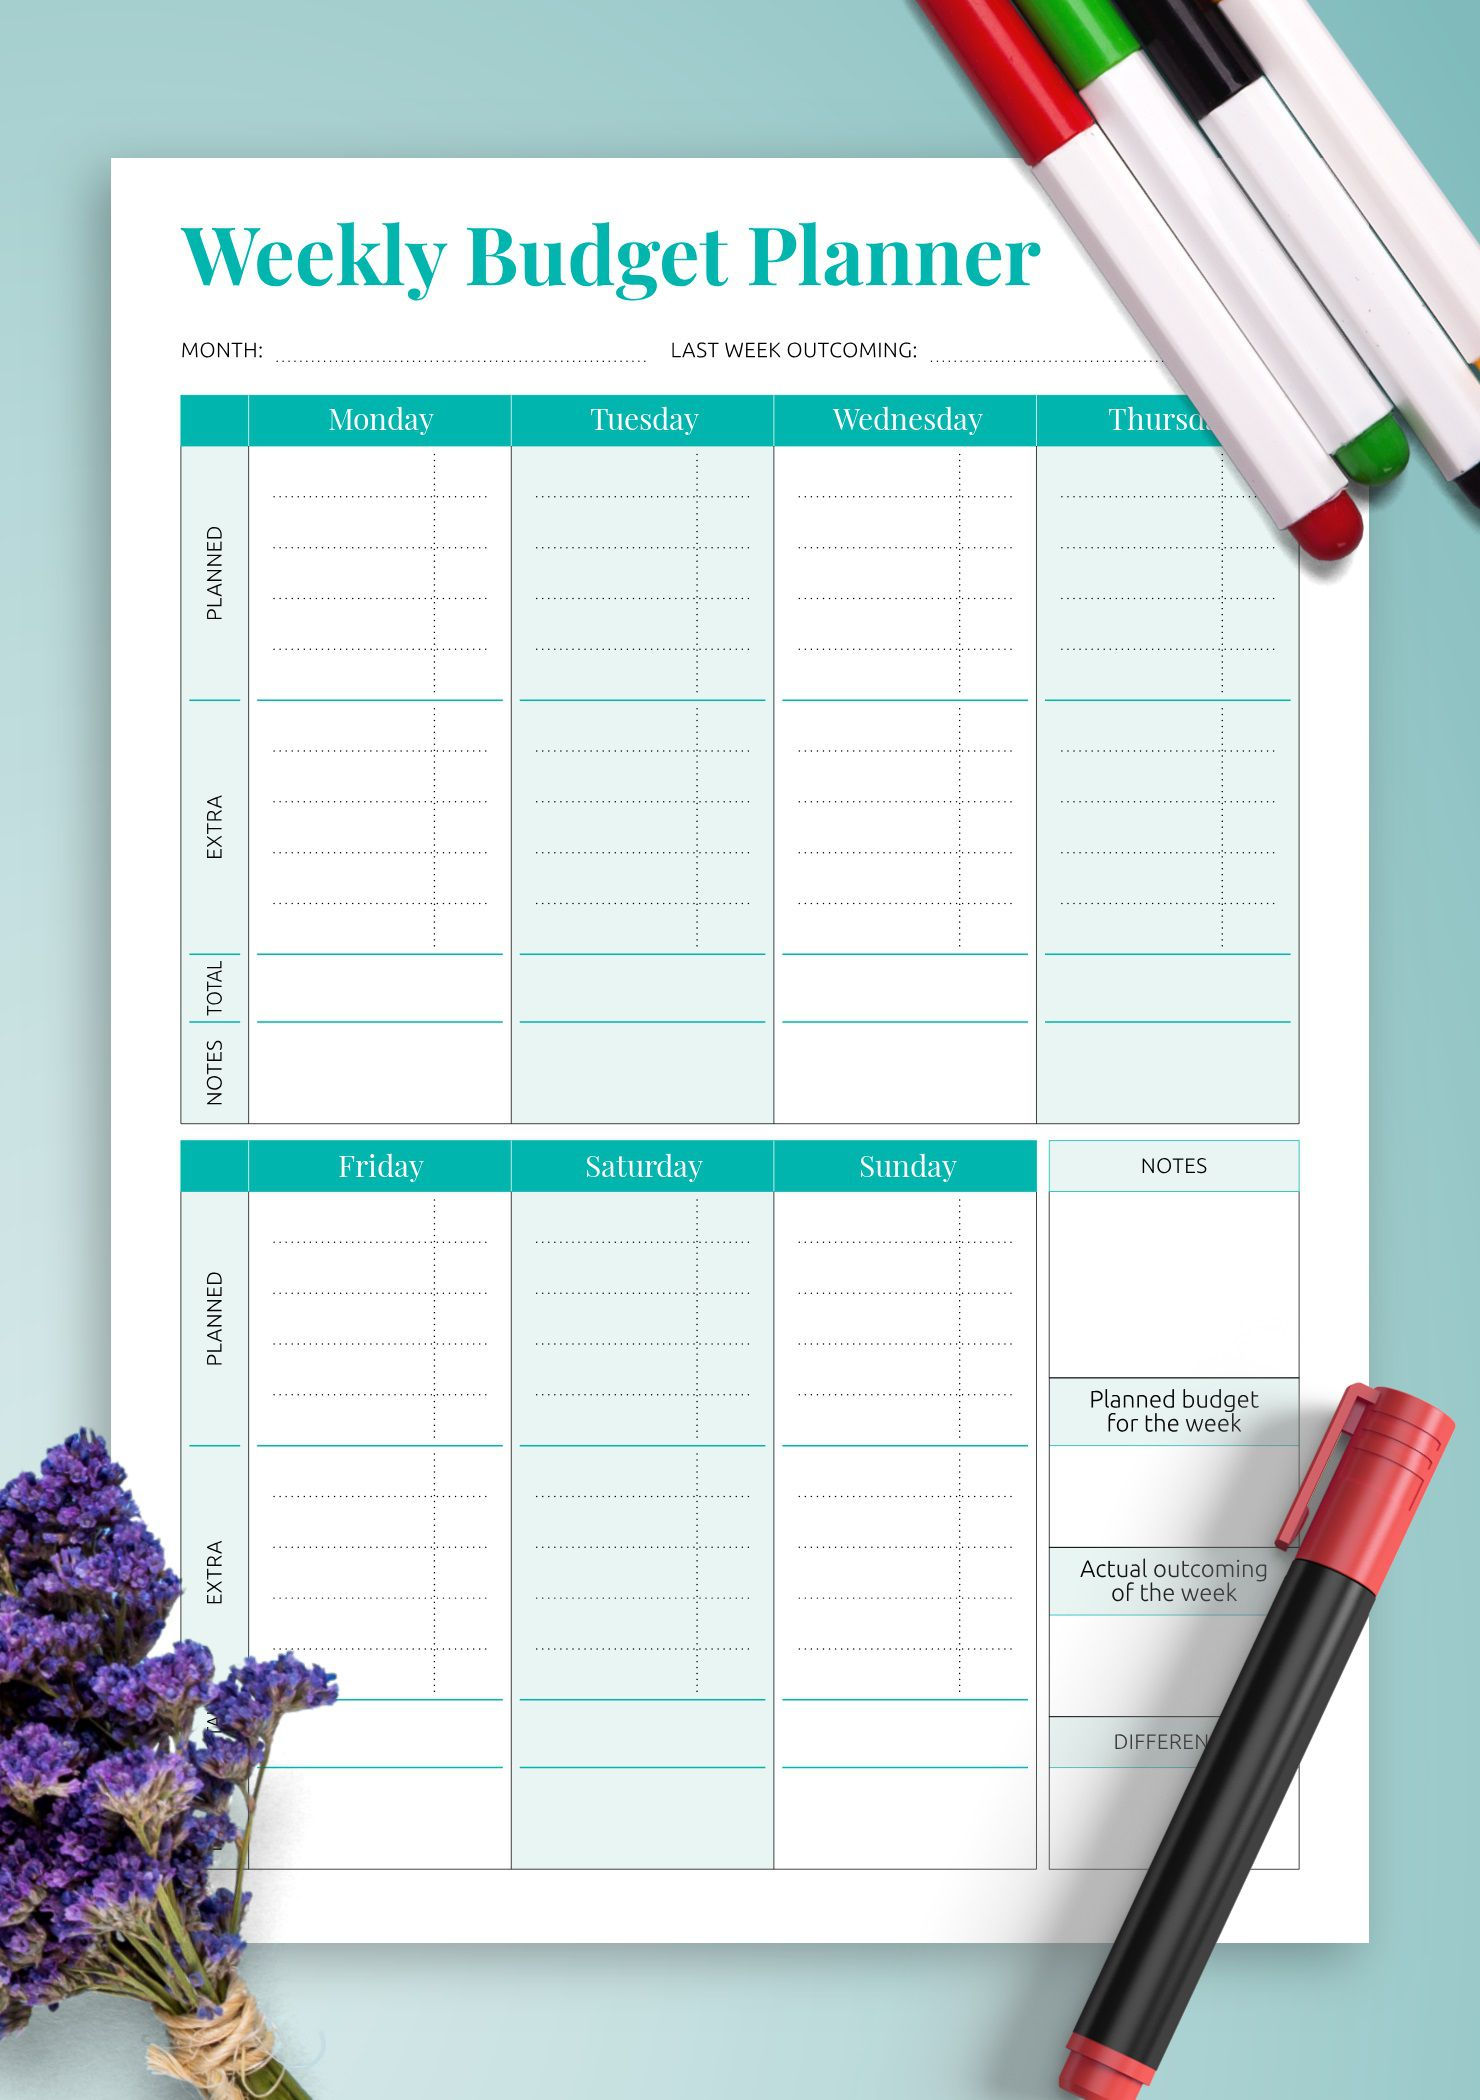 008 Surprising Simple Weekly Budget Template Picture  Planner Personal PrintableFull